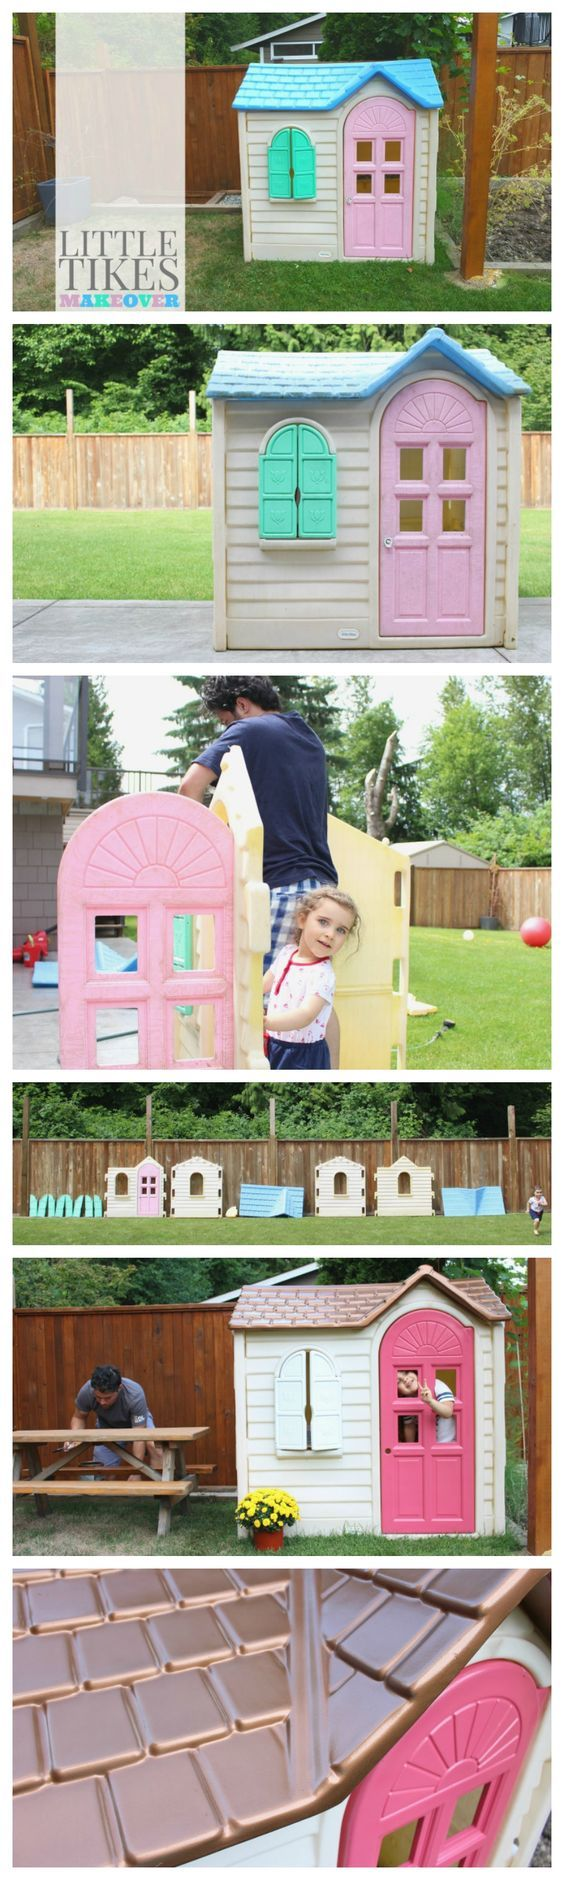 DIY Little Tikes Makeover, Painting Little Tikes Homes, Little Tikes Makeover, DIY Little Tikes, LittleMissMama.com